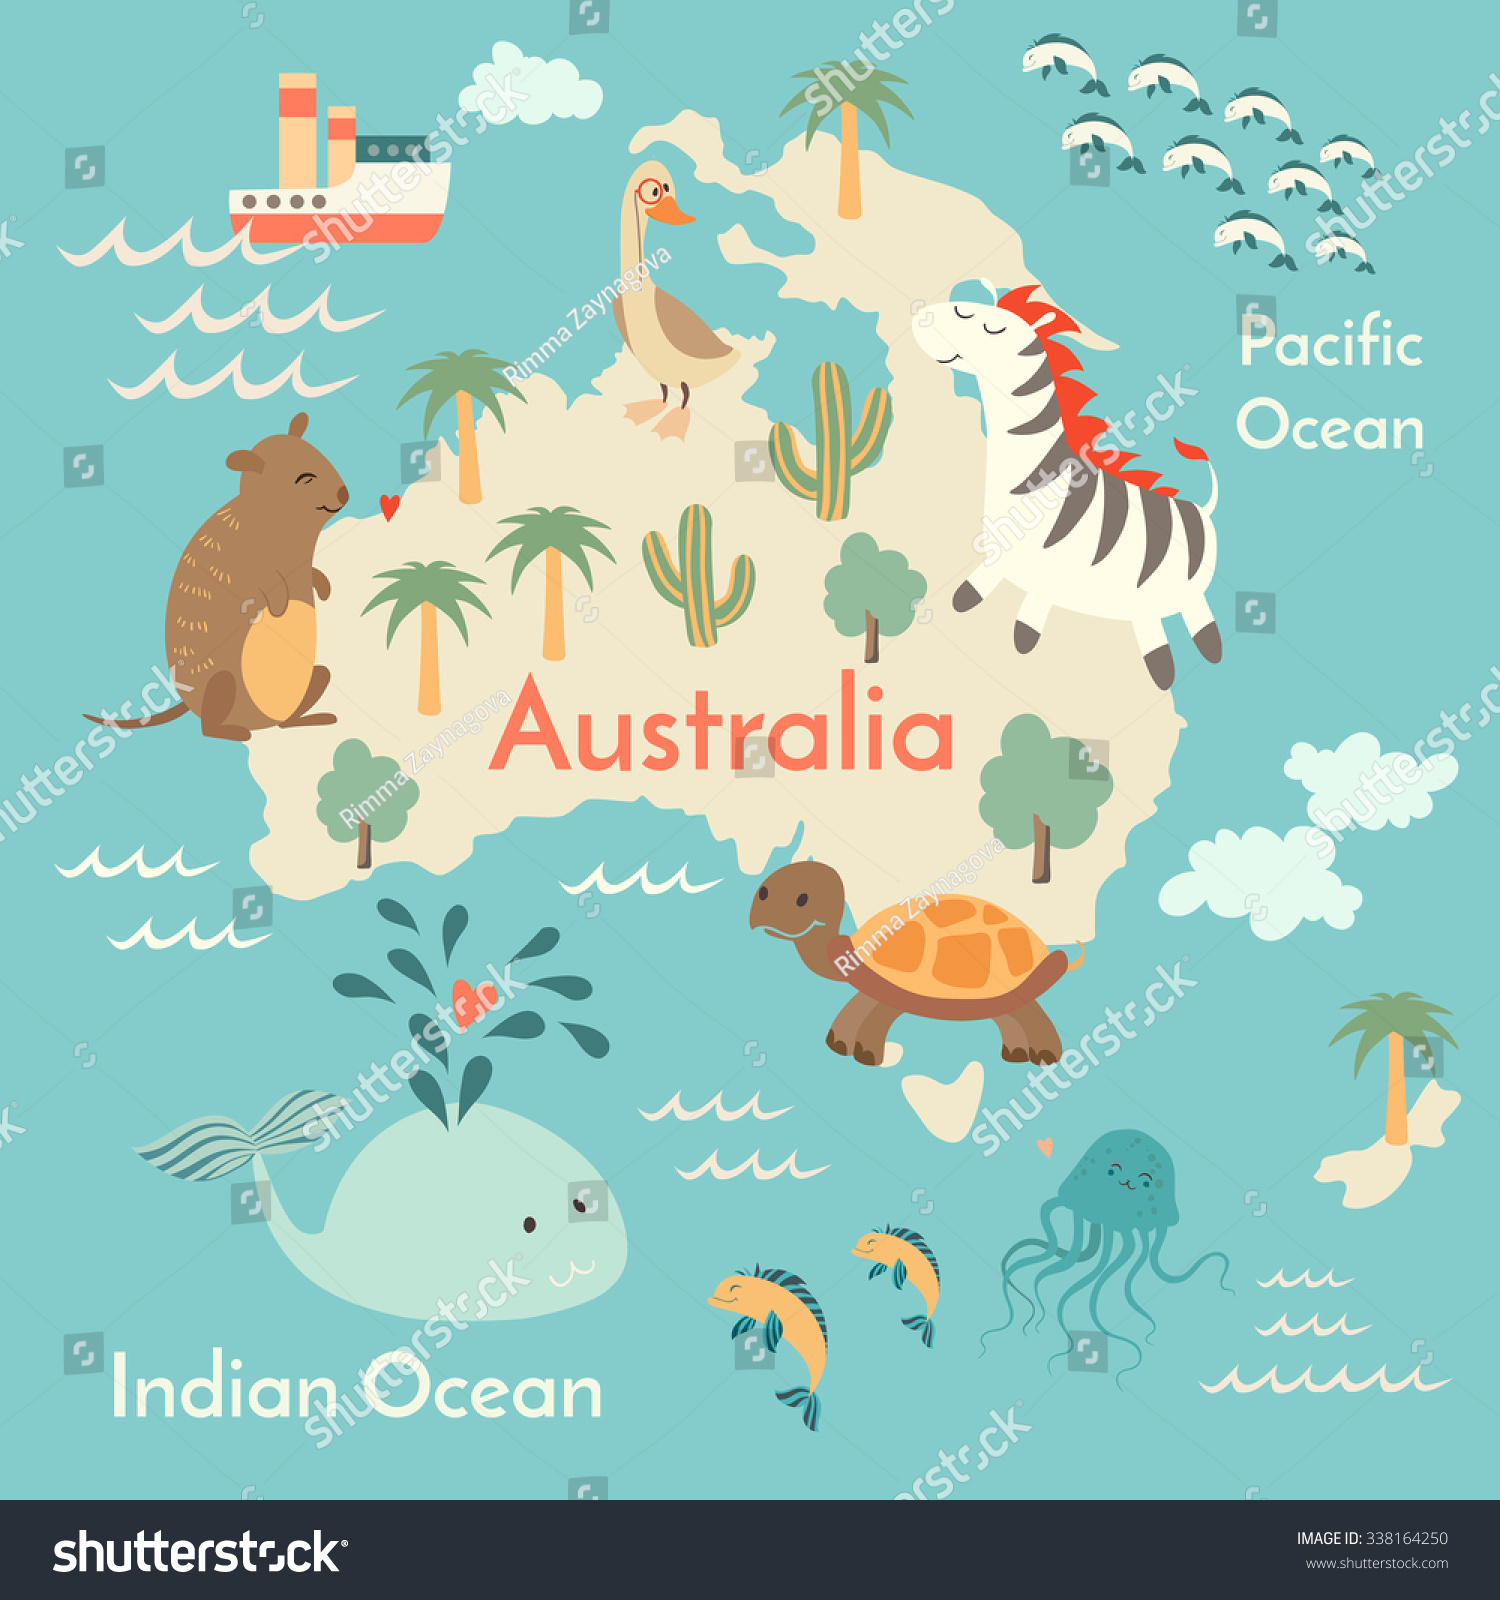 how to draw a little australia map